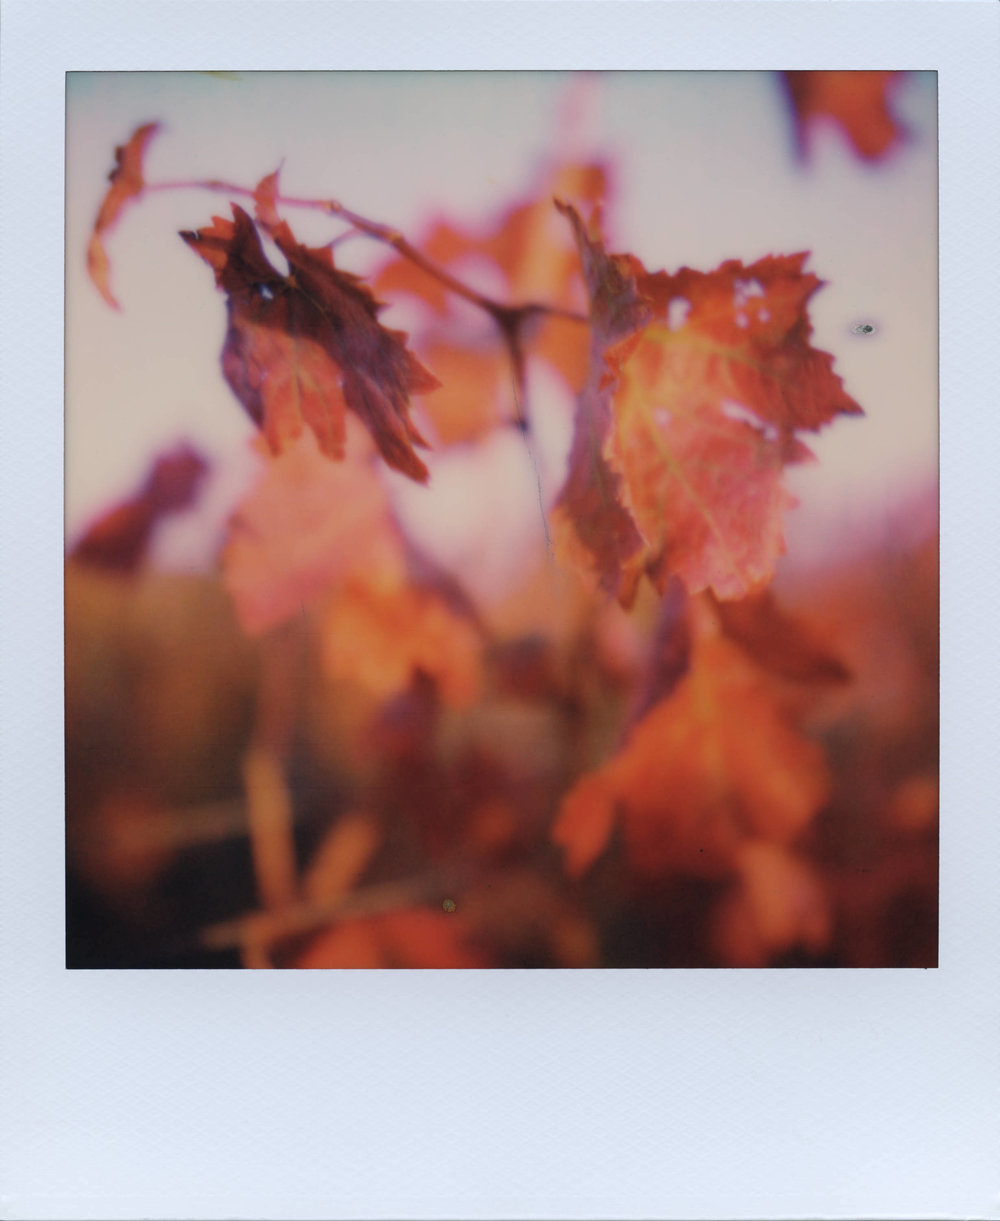 This Is Happening | SX-70 | POS SX-70  | Ale Di Gangi